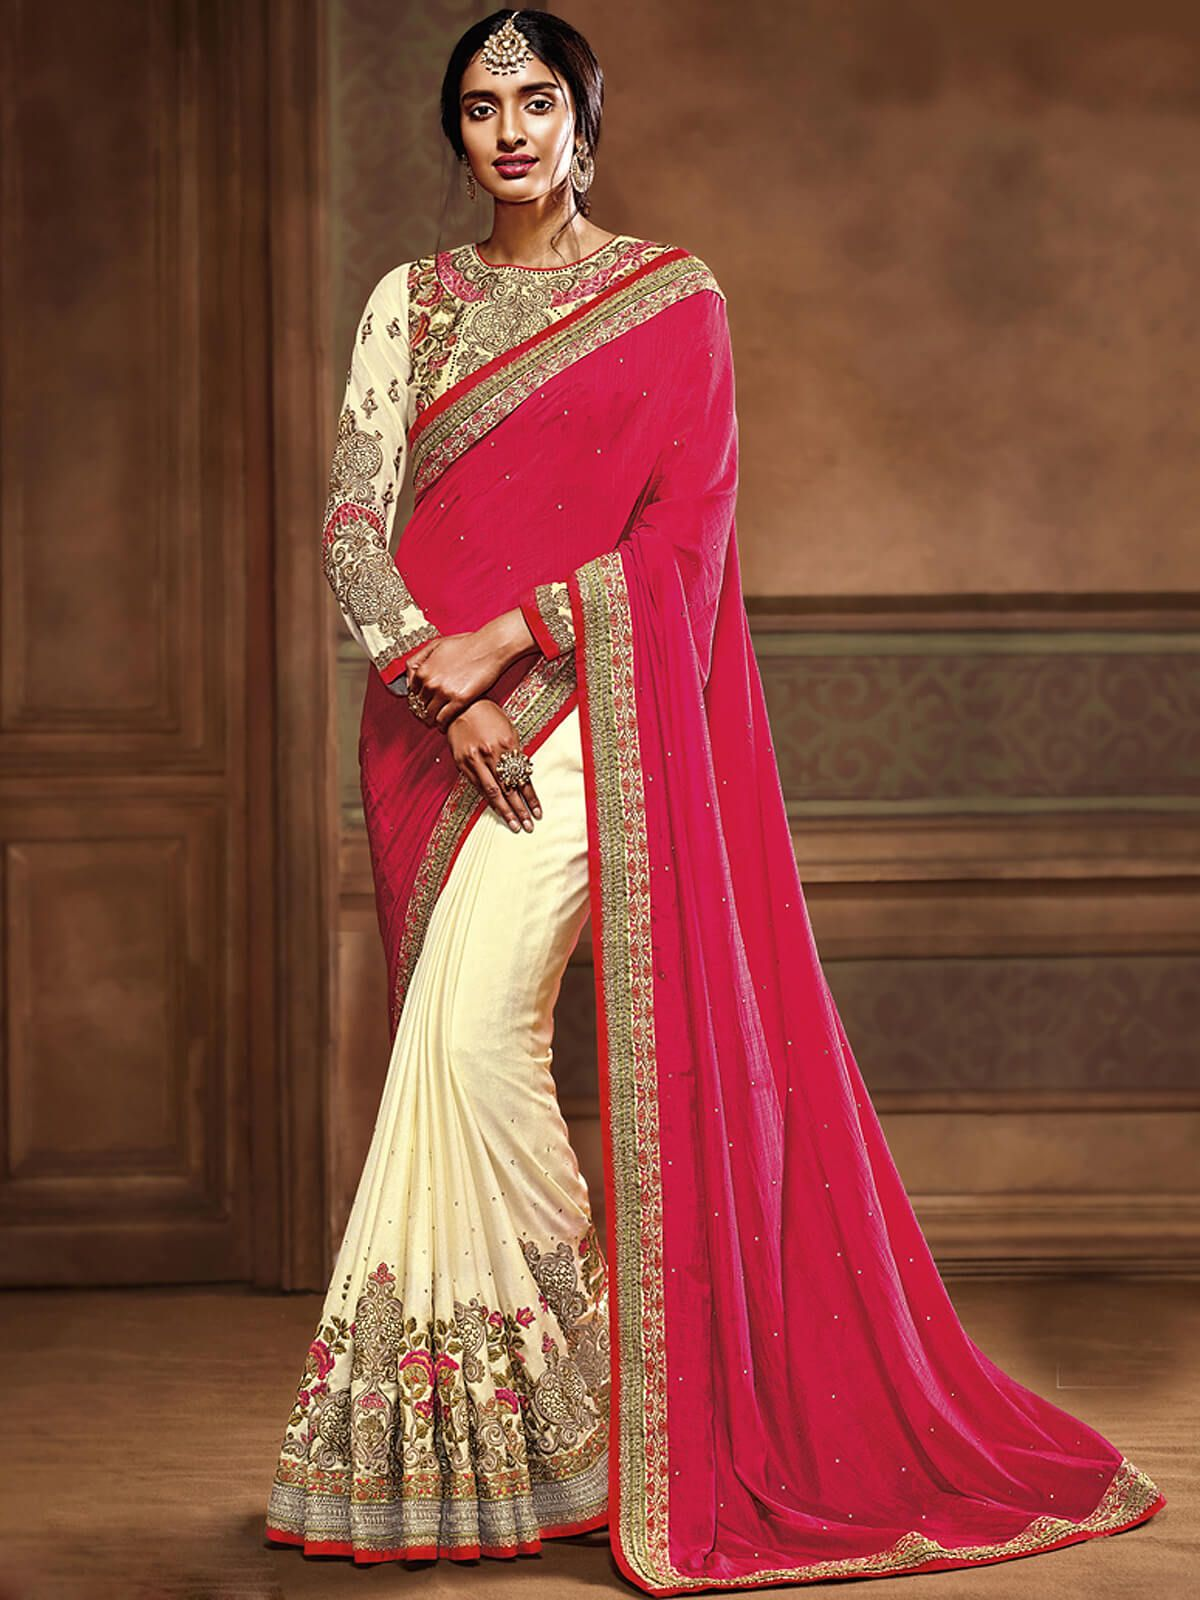 5fa3a24f1e5ea8 Marvelous pink and cream chiffon festival wear half and half saree. Having  fabric chiffon, georgette and dupion. The attractive thread work,  embroidery work ...